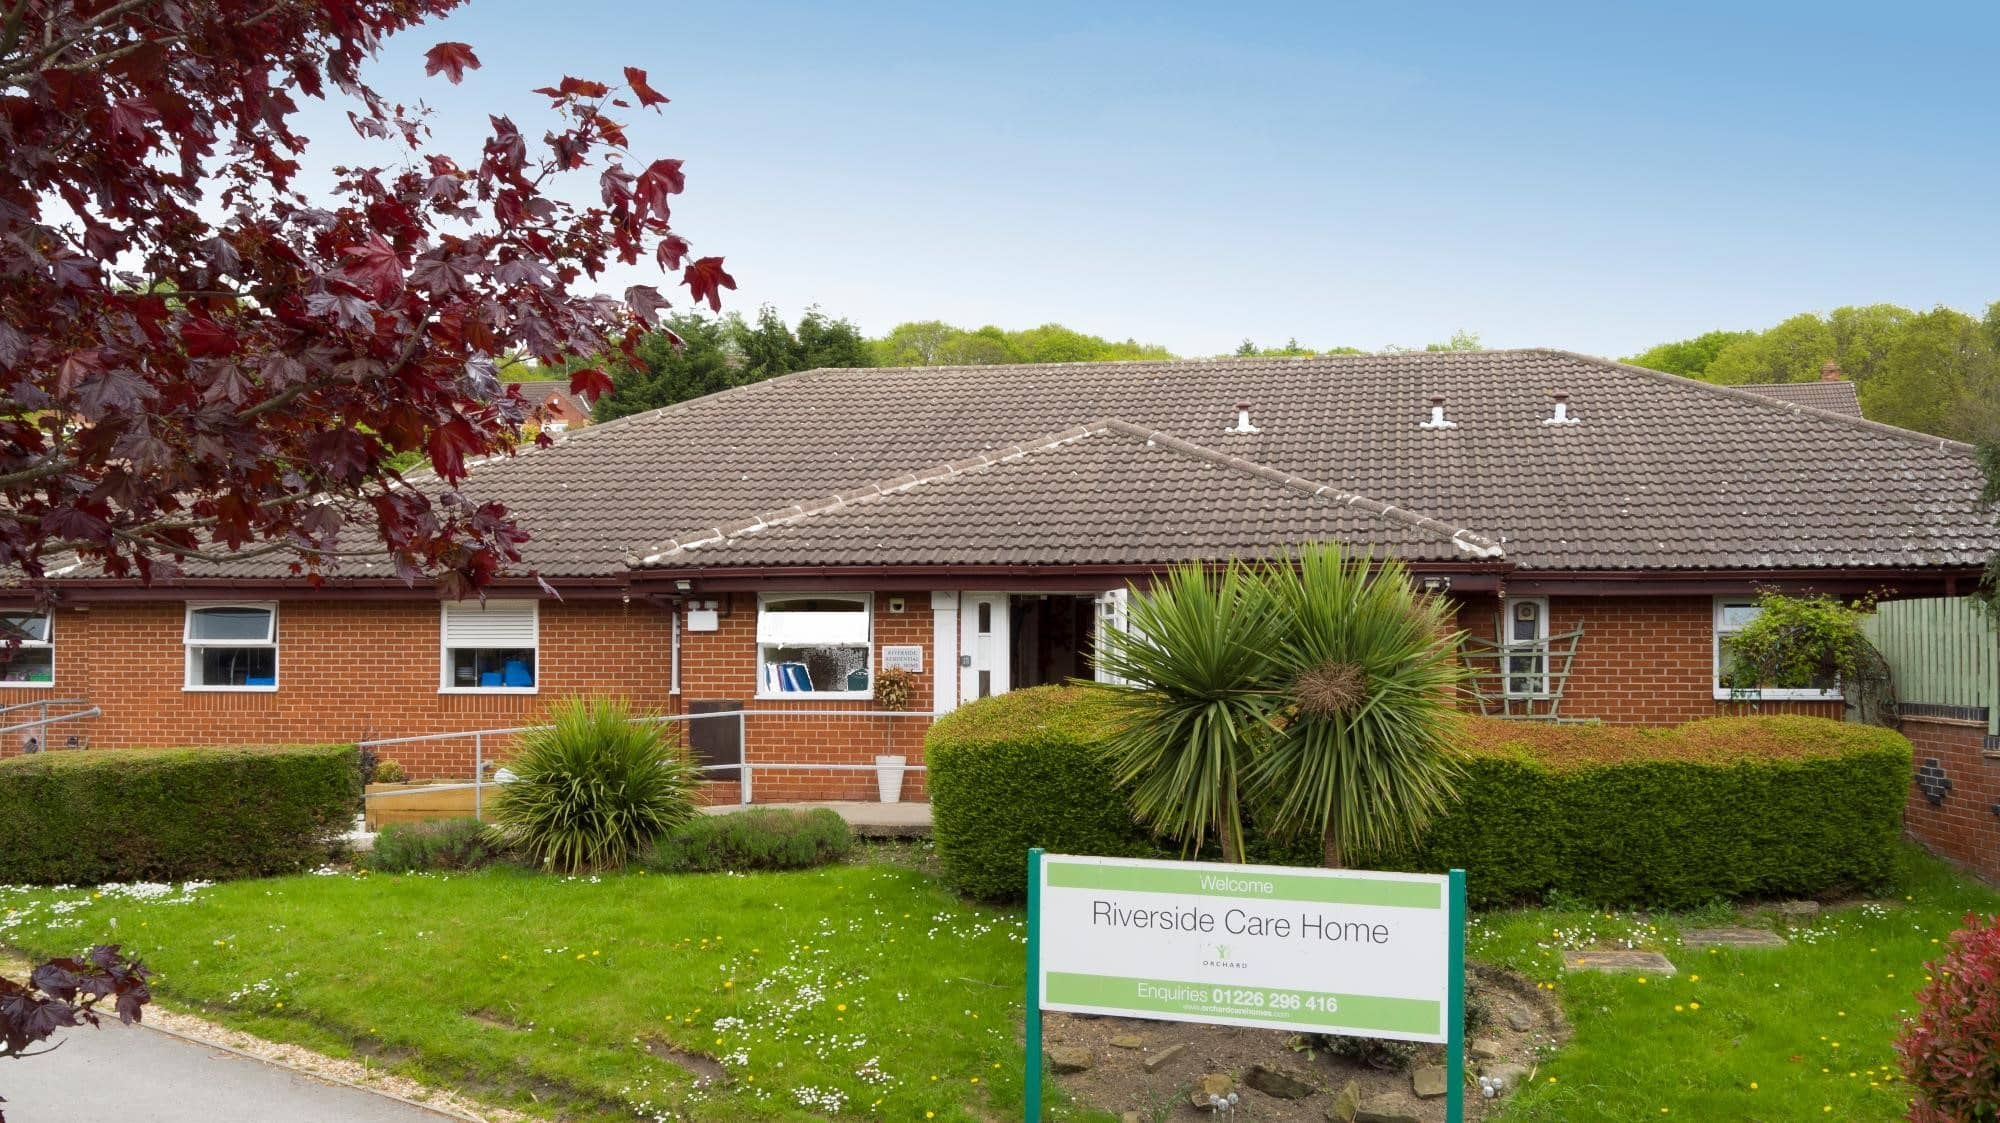 Riverside Care Home, Barnsley